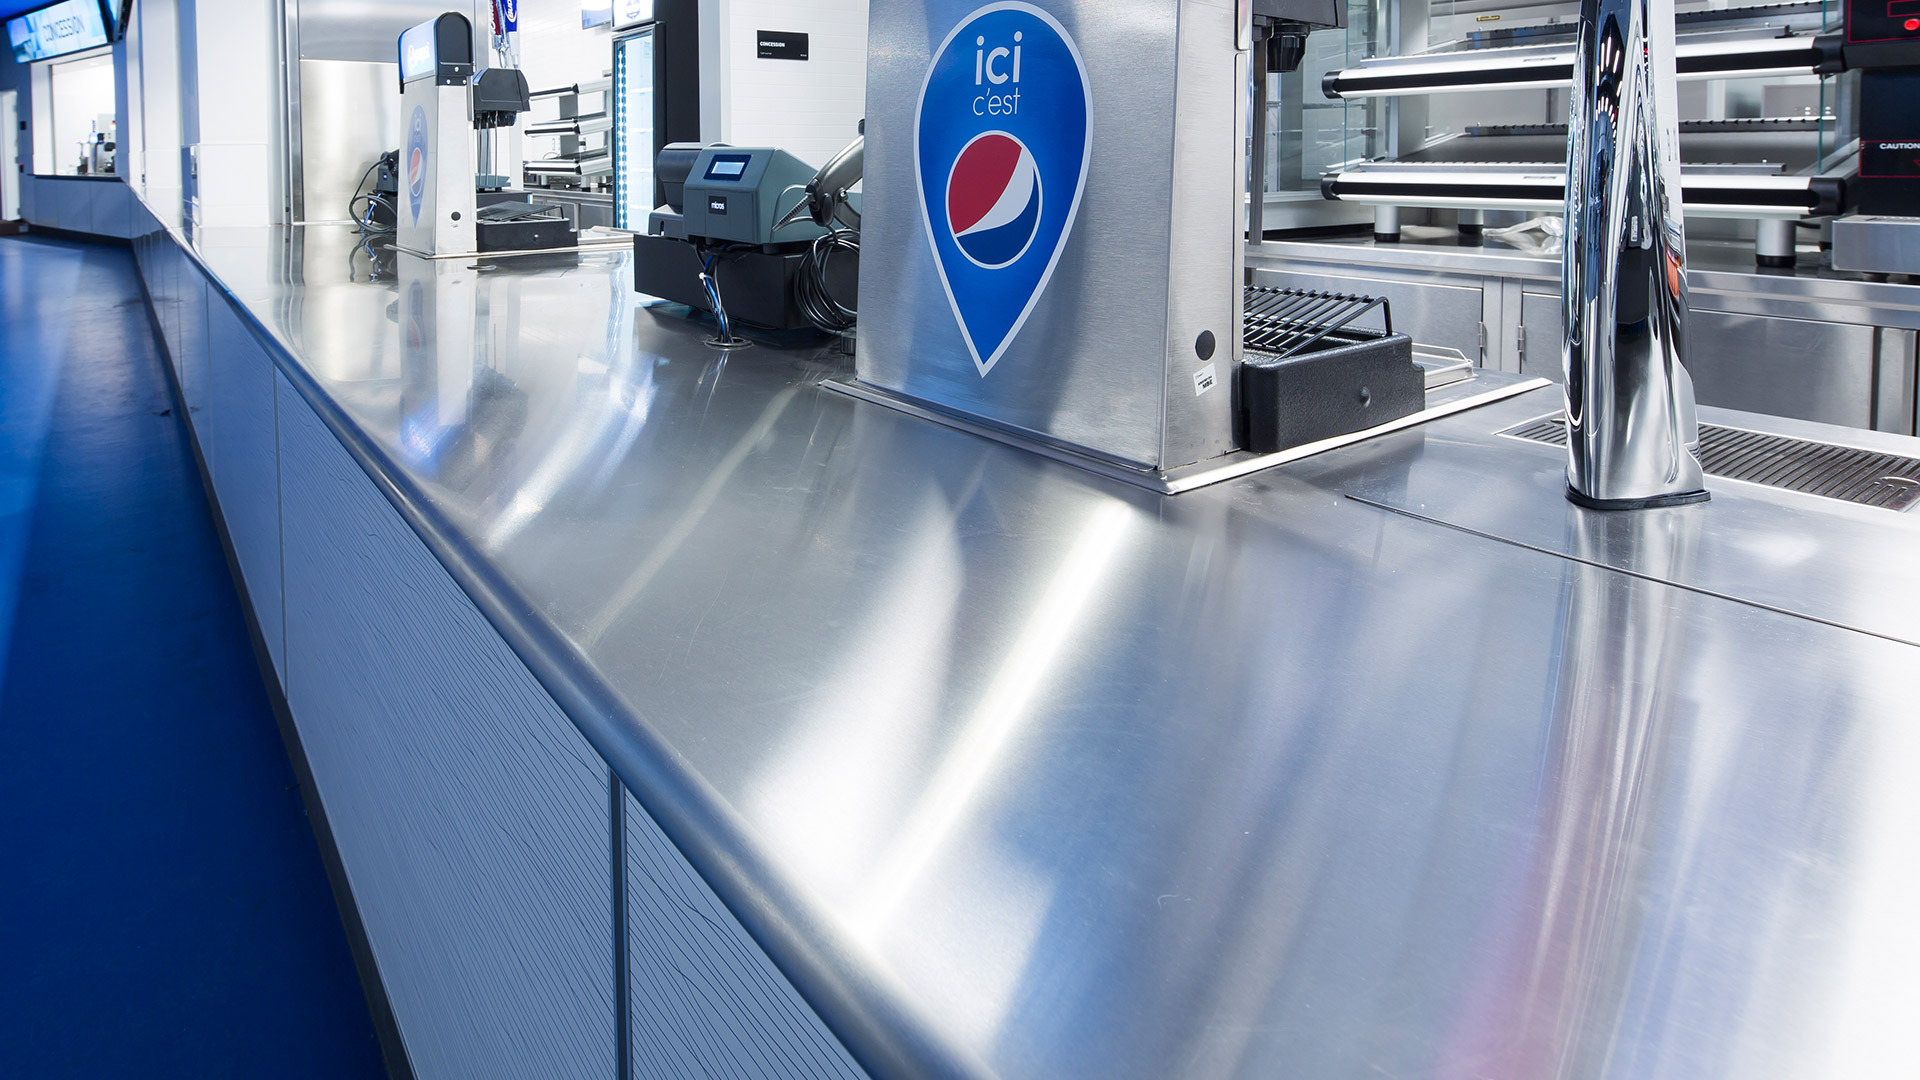 Commercial kitchens fabrication and food equipment supply - Julien Inc.